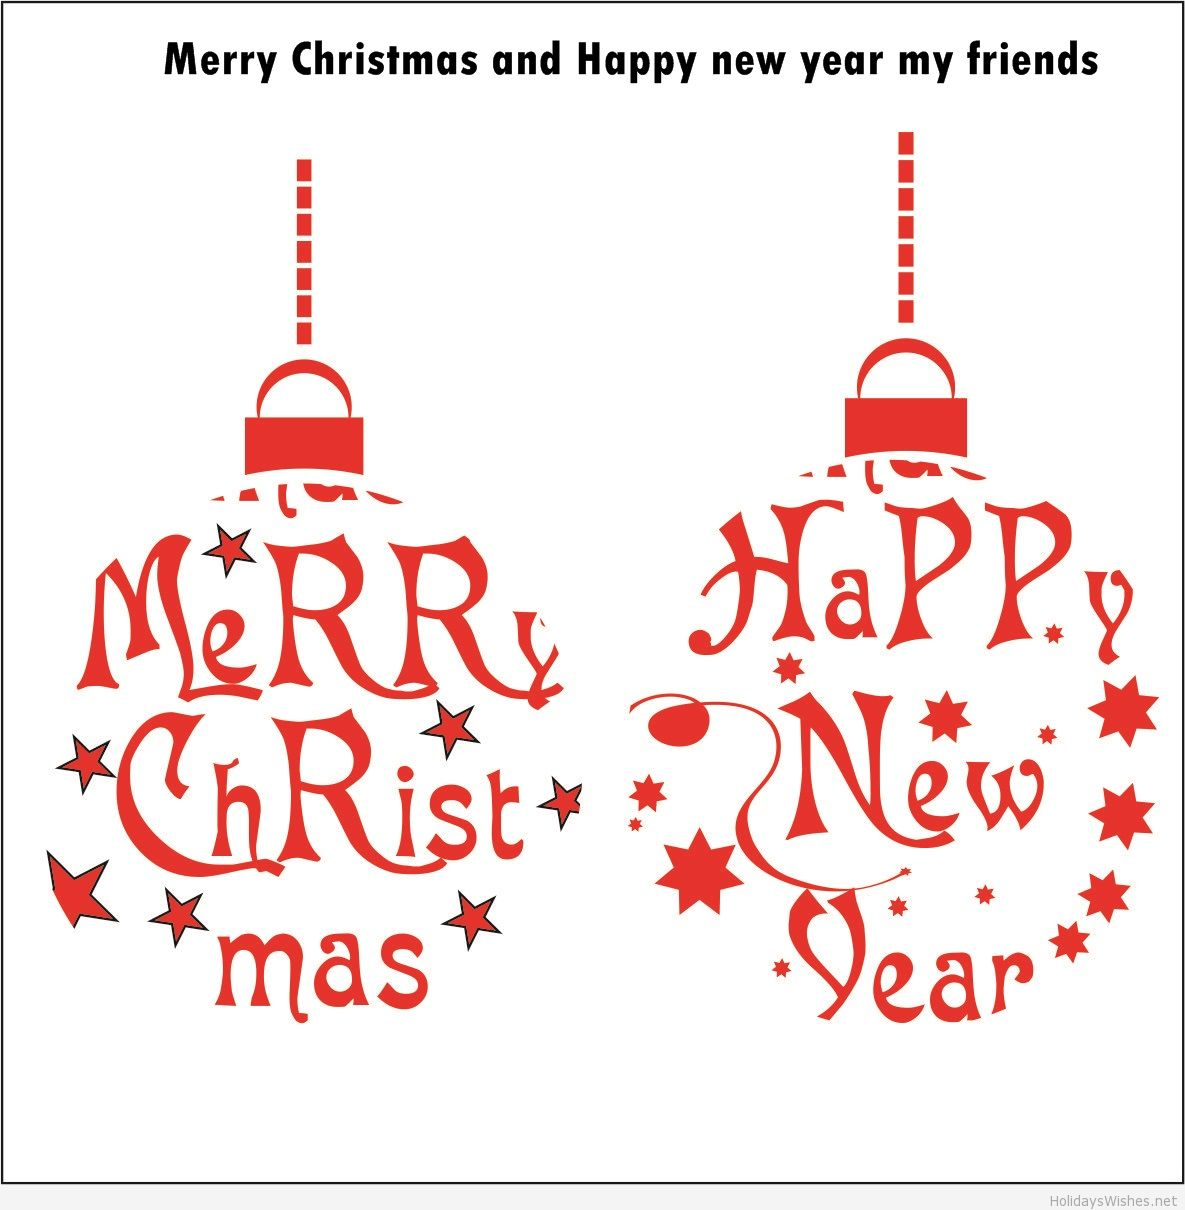 merry-christmas-and-happy-new-year-friends